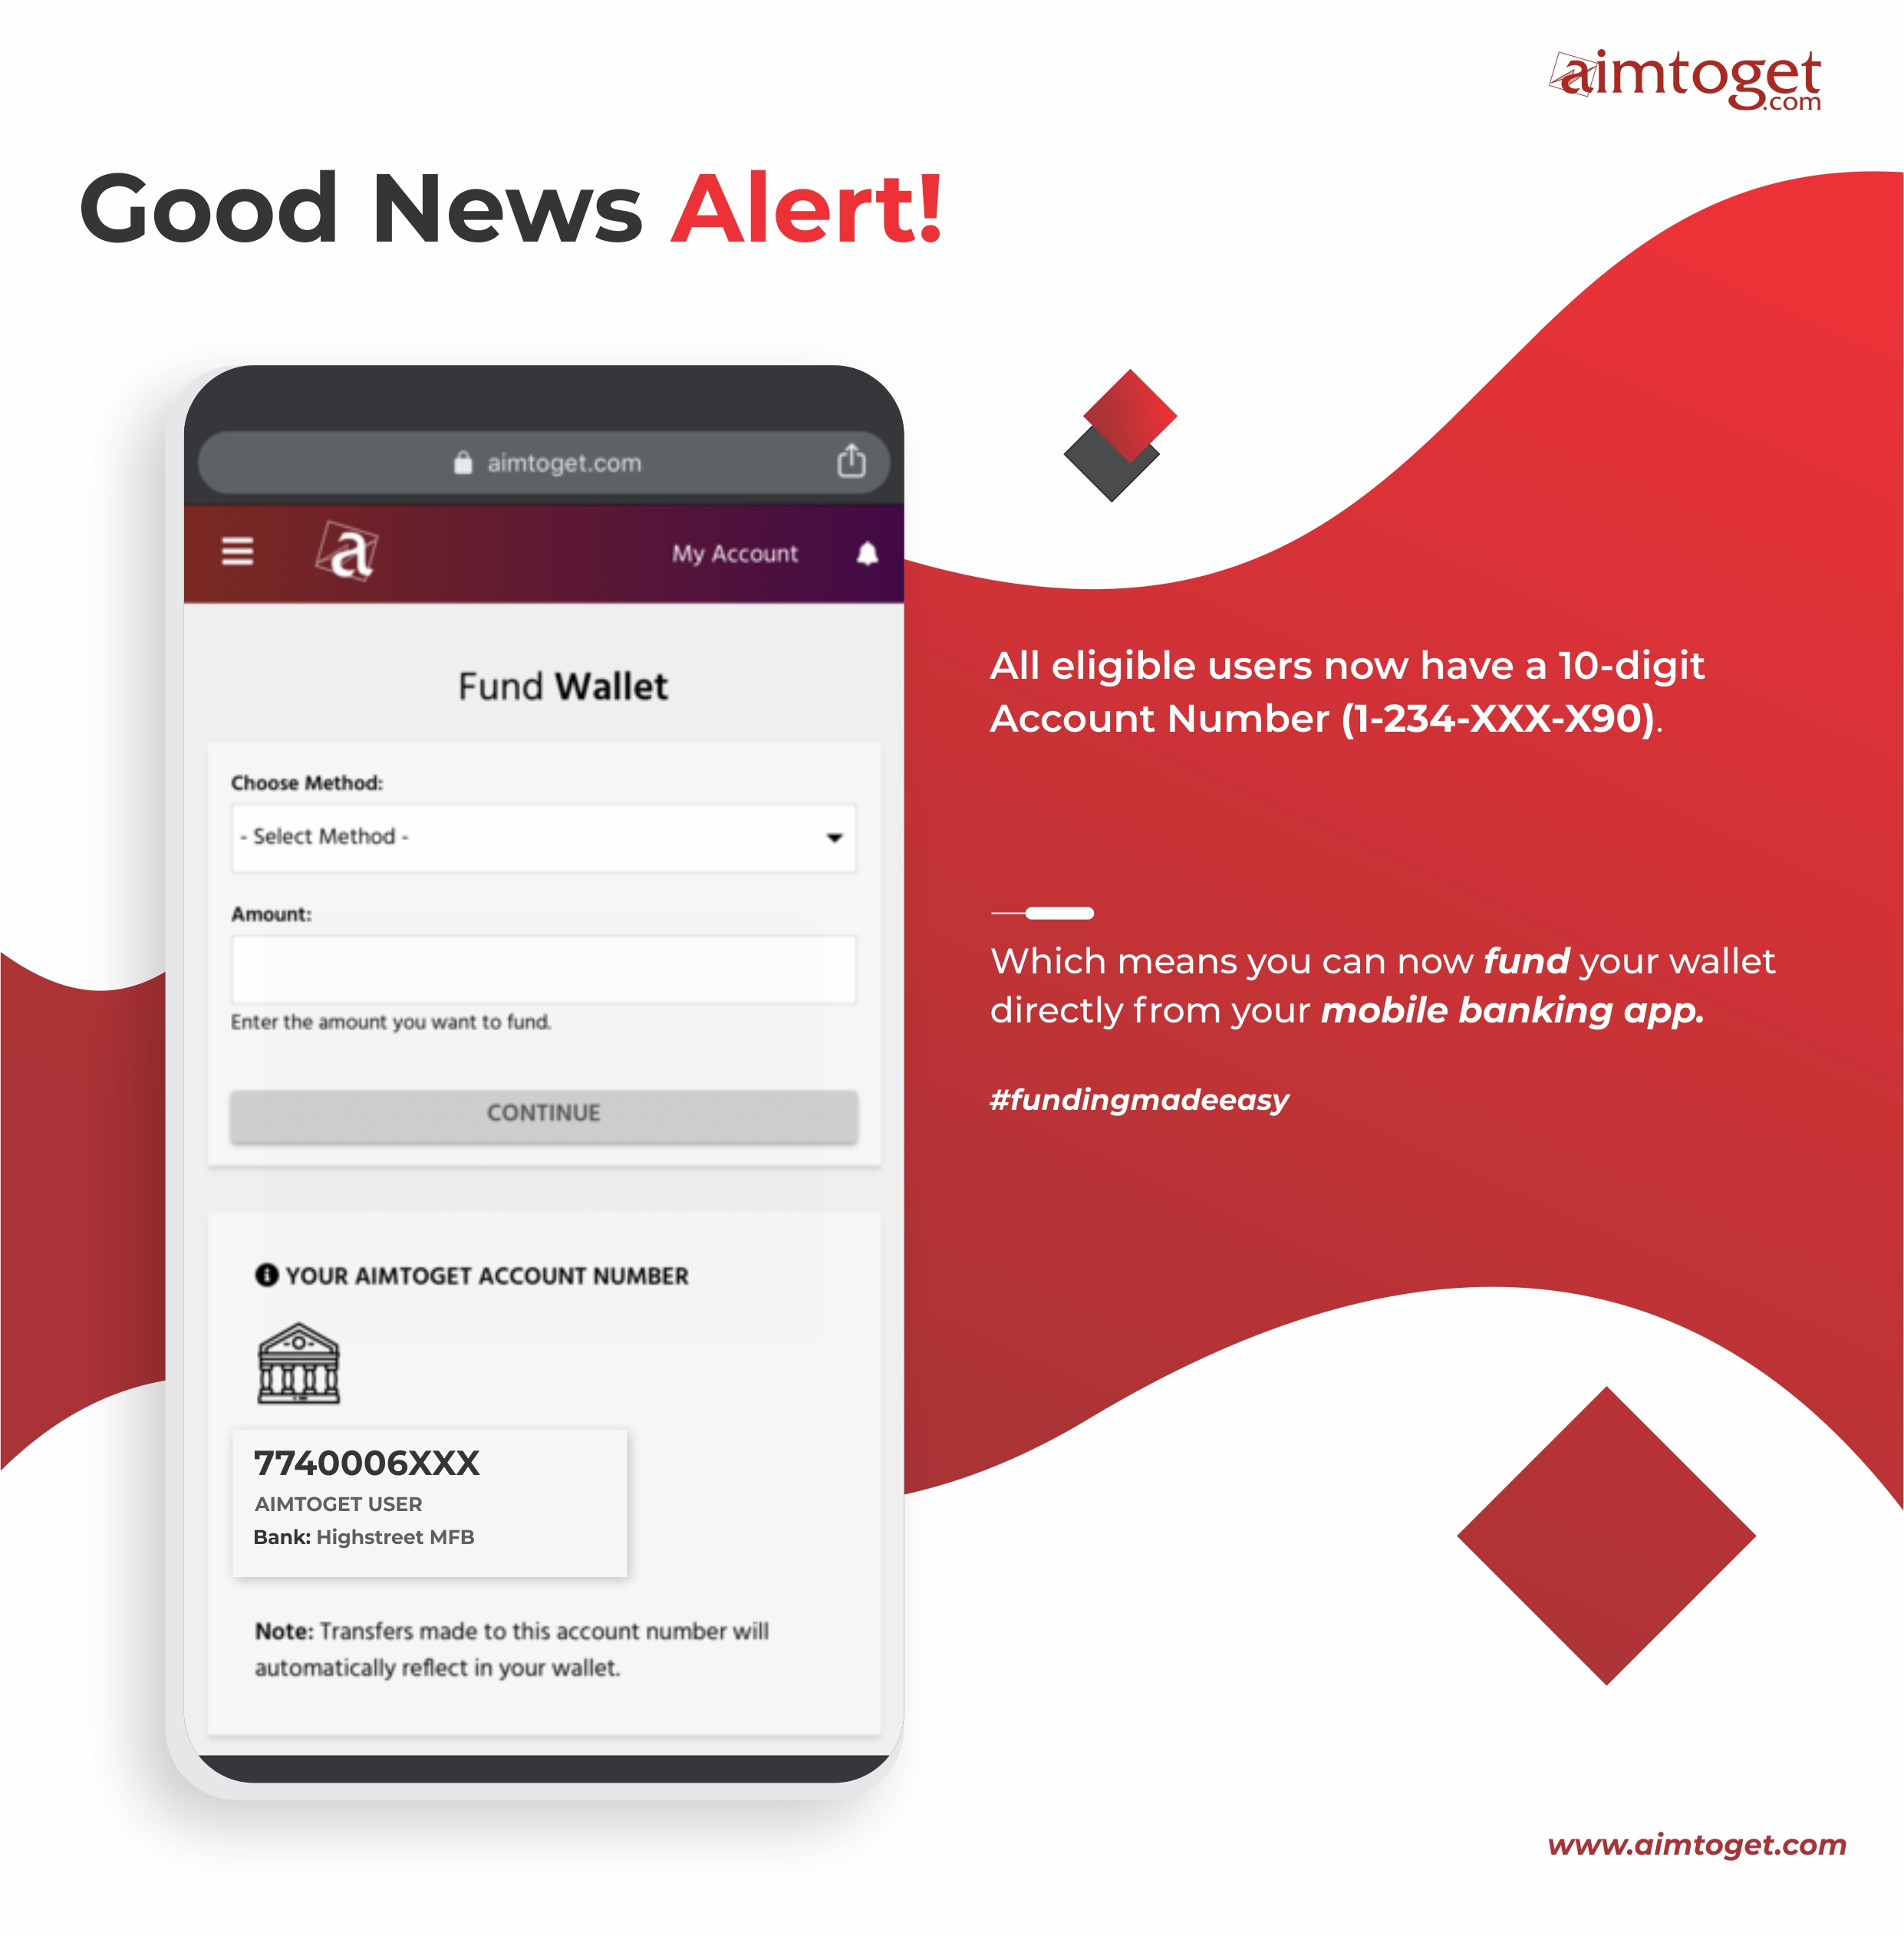 aimtoget account number